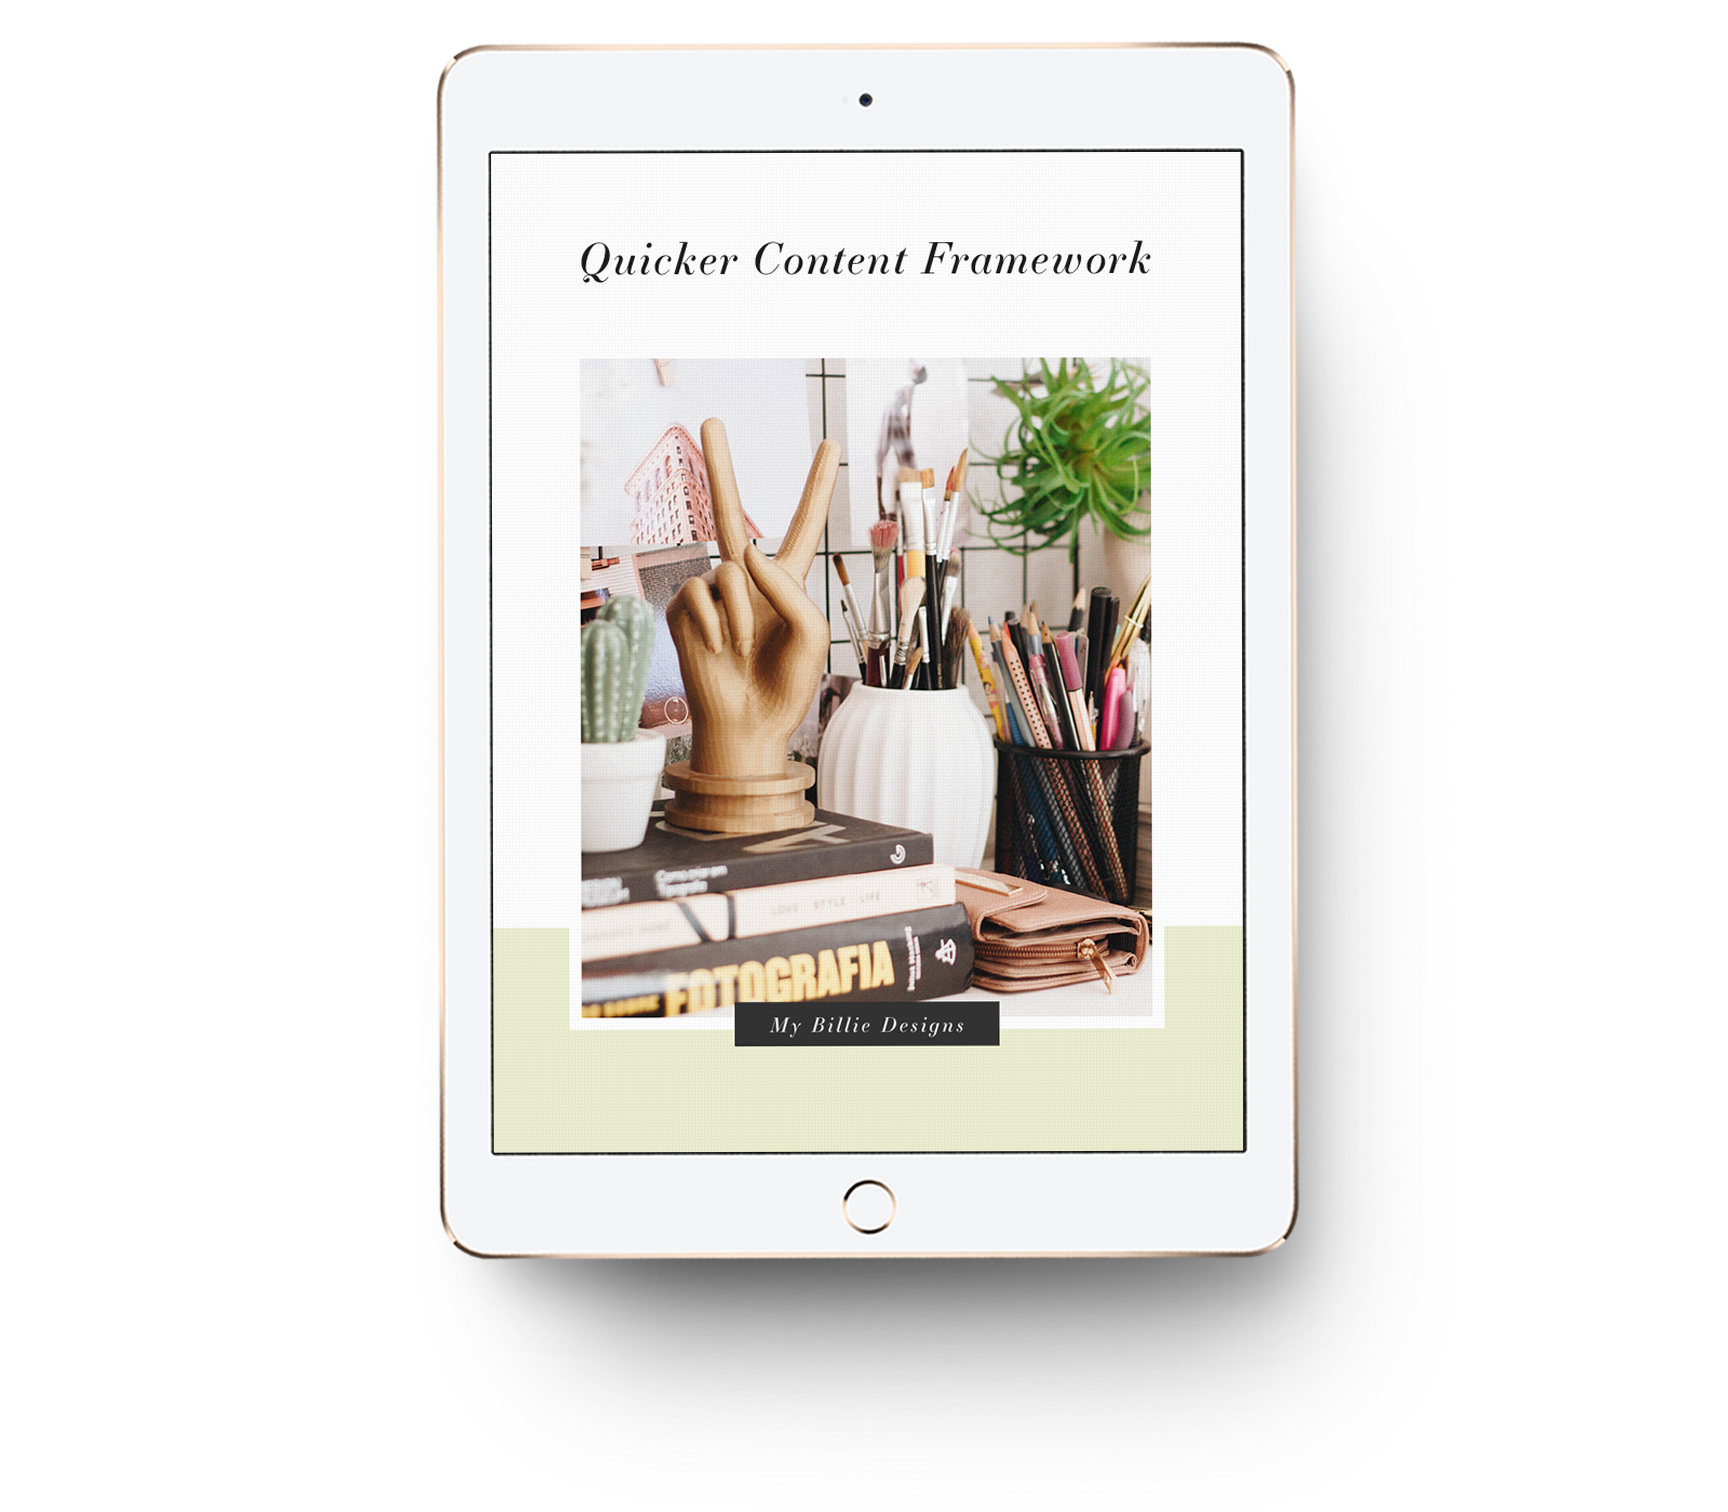 quicker content ipad mock up what you get.png